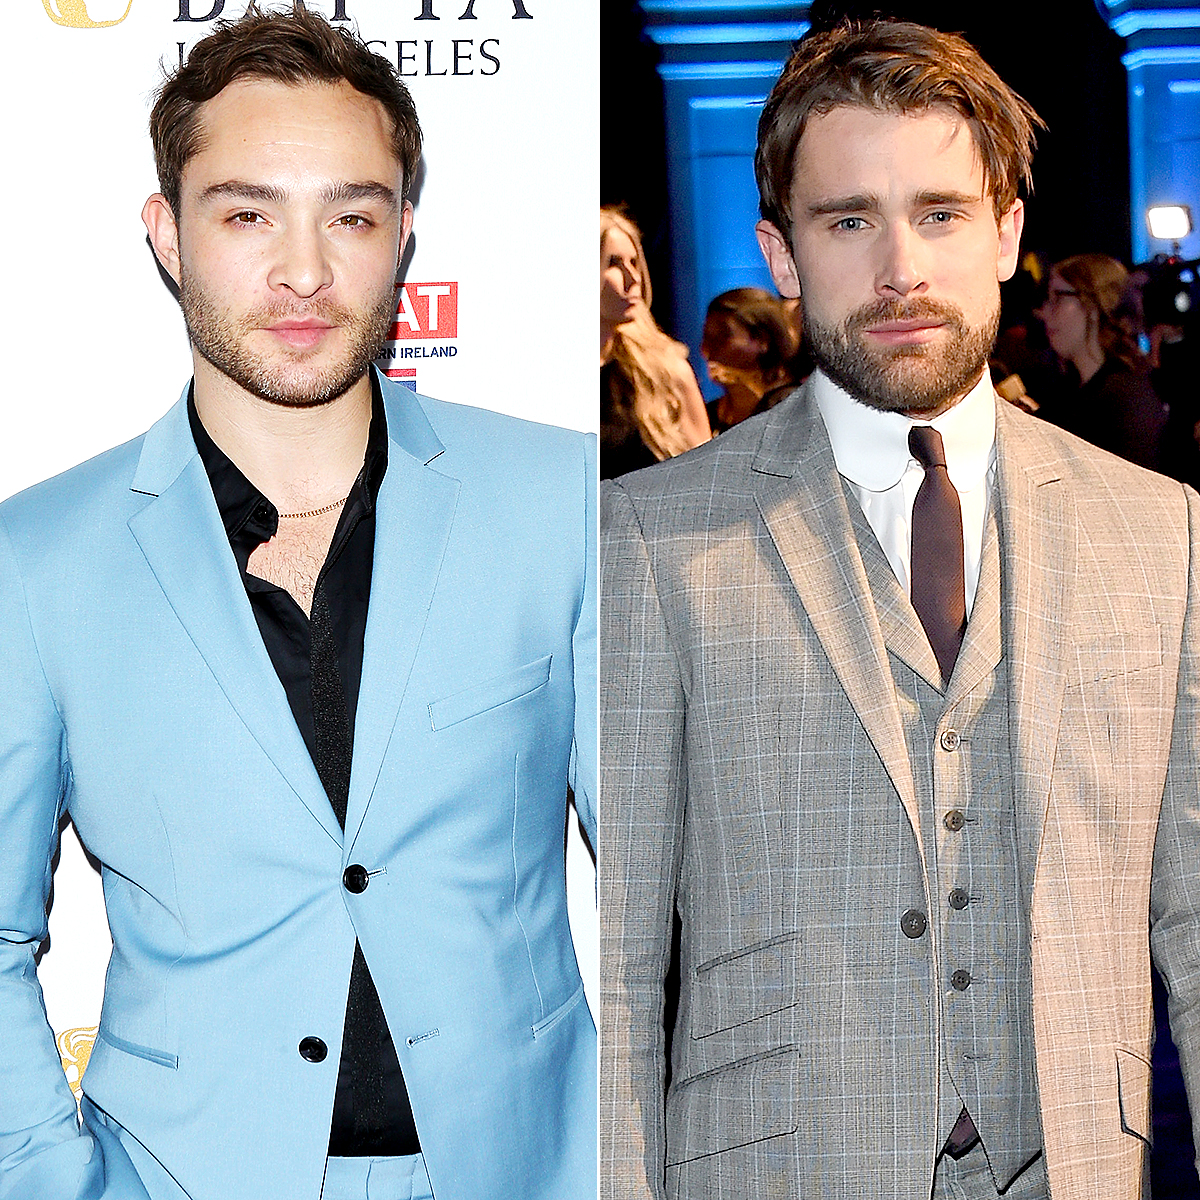 Ed Westwick replaced on BBC drama after rape allegations